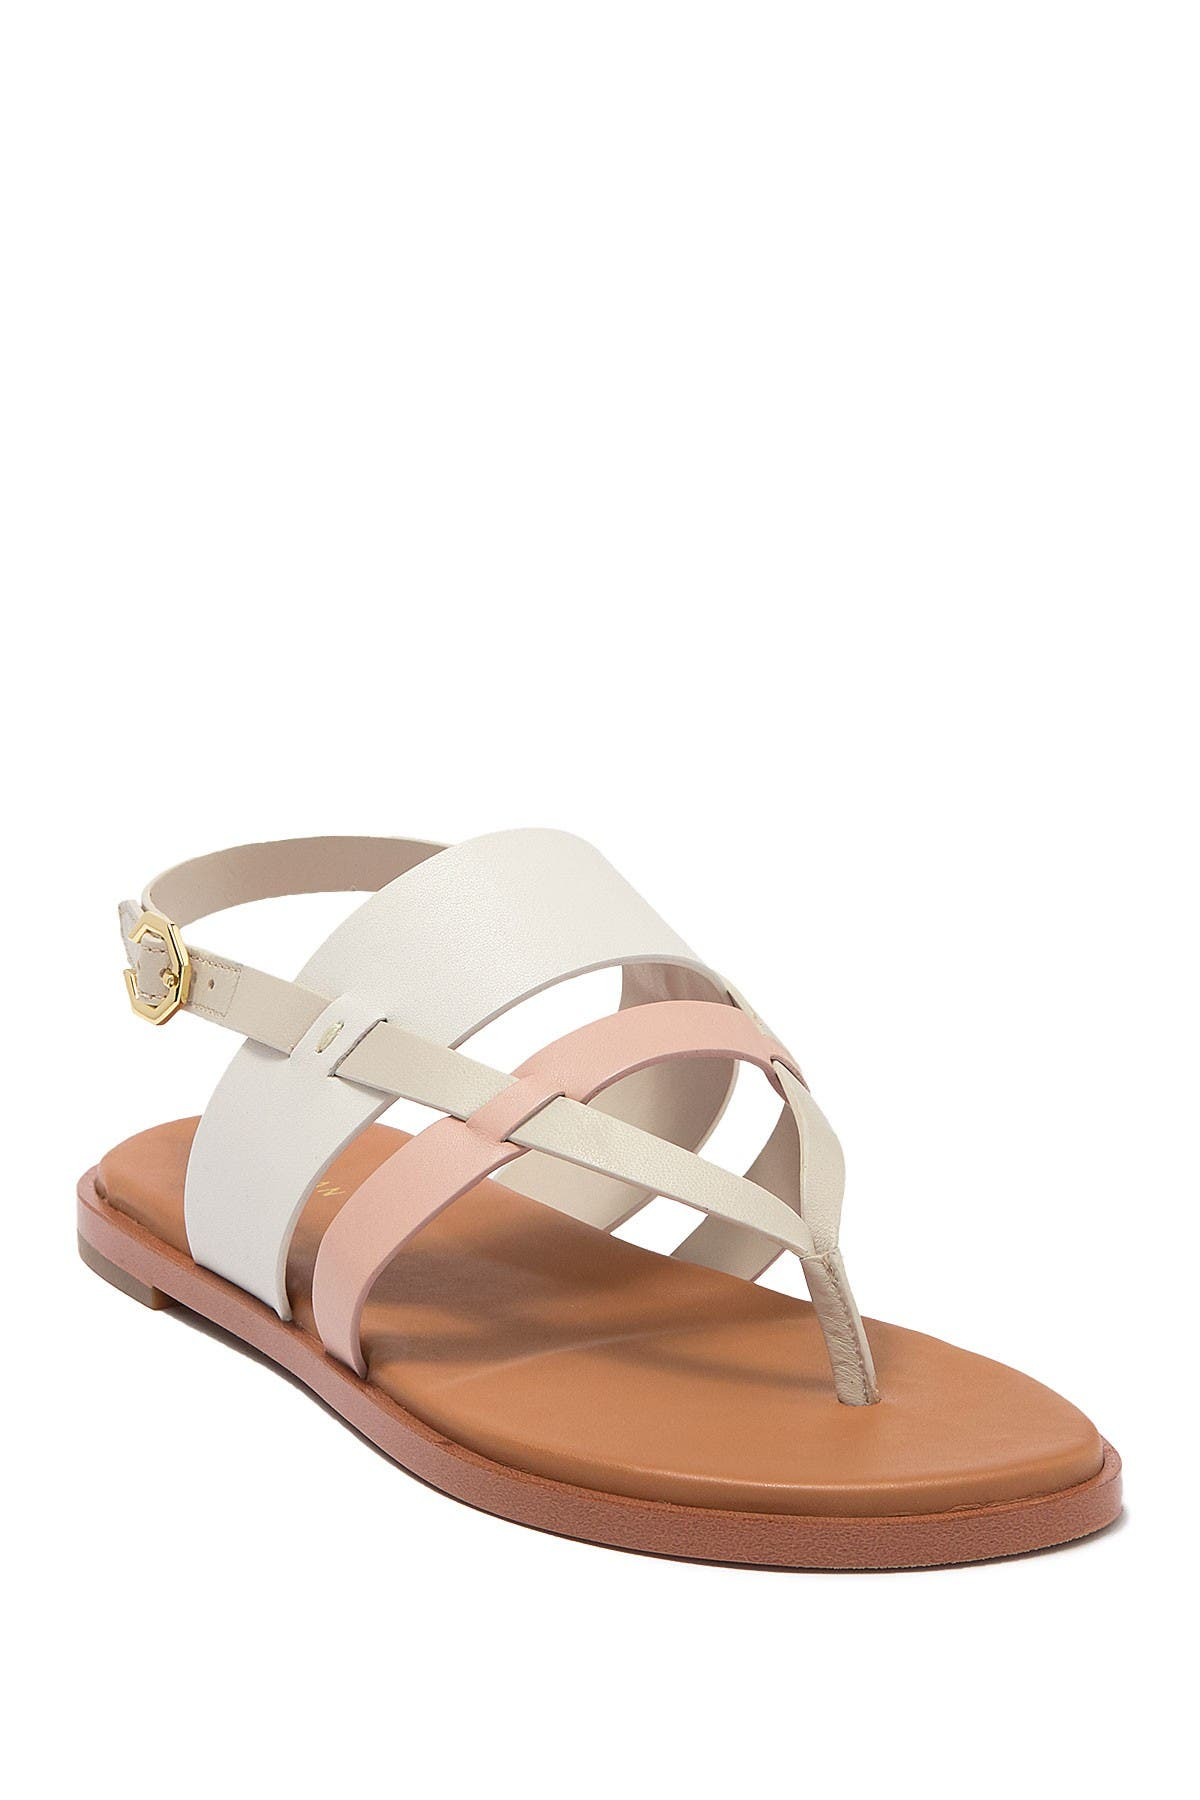 Cole Haan FINLEY GRAND SANDAL